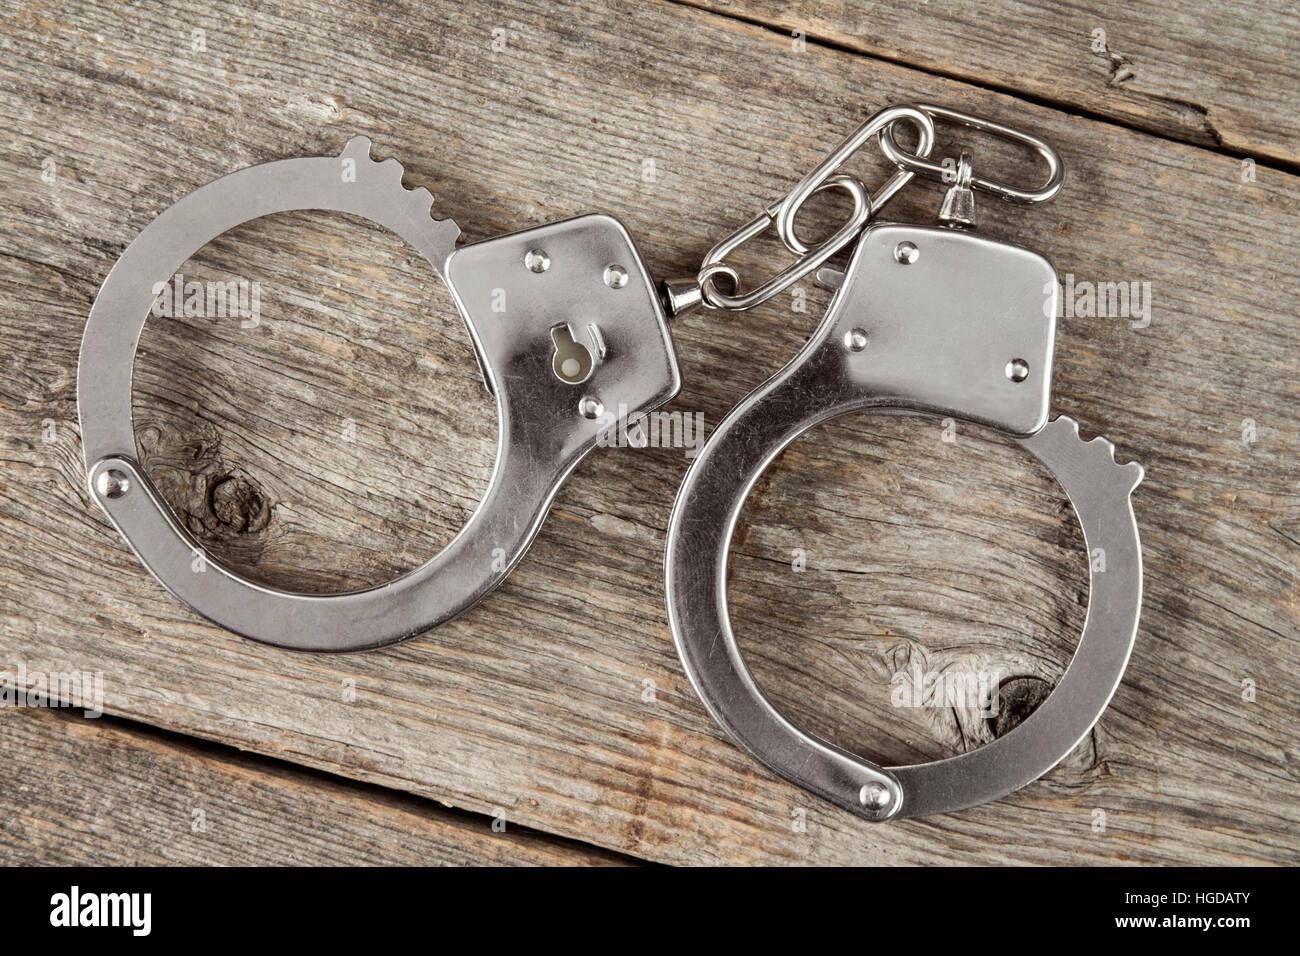 Top view of handcuffs on the wooden background - Stock Image